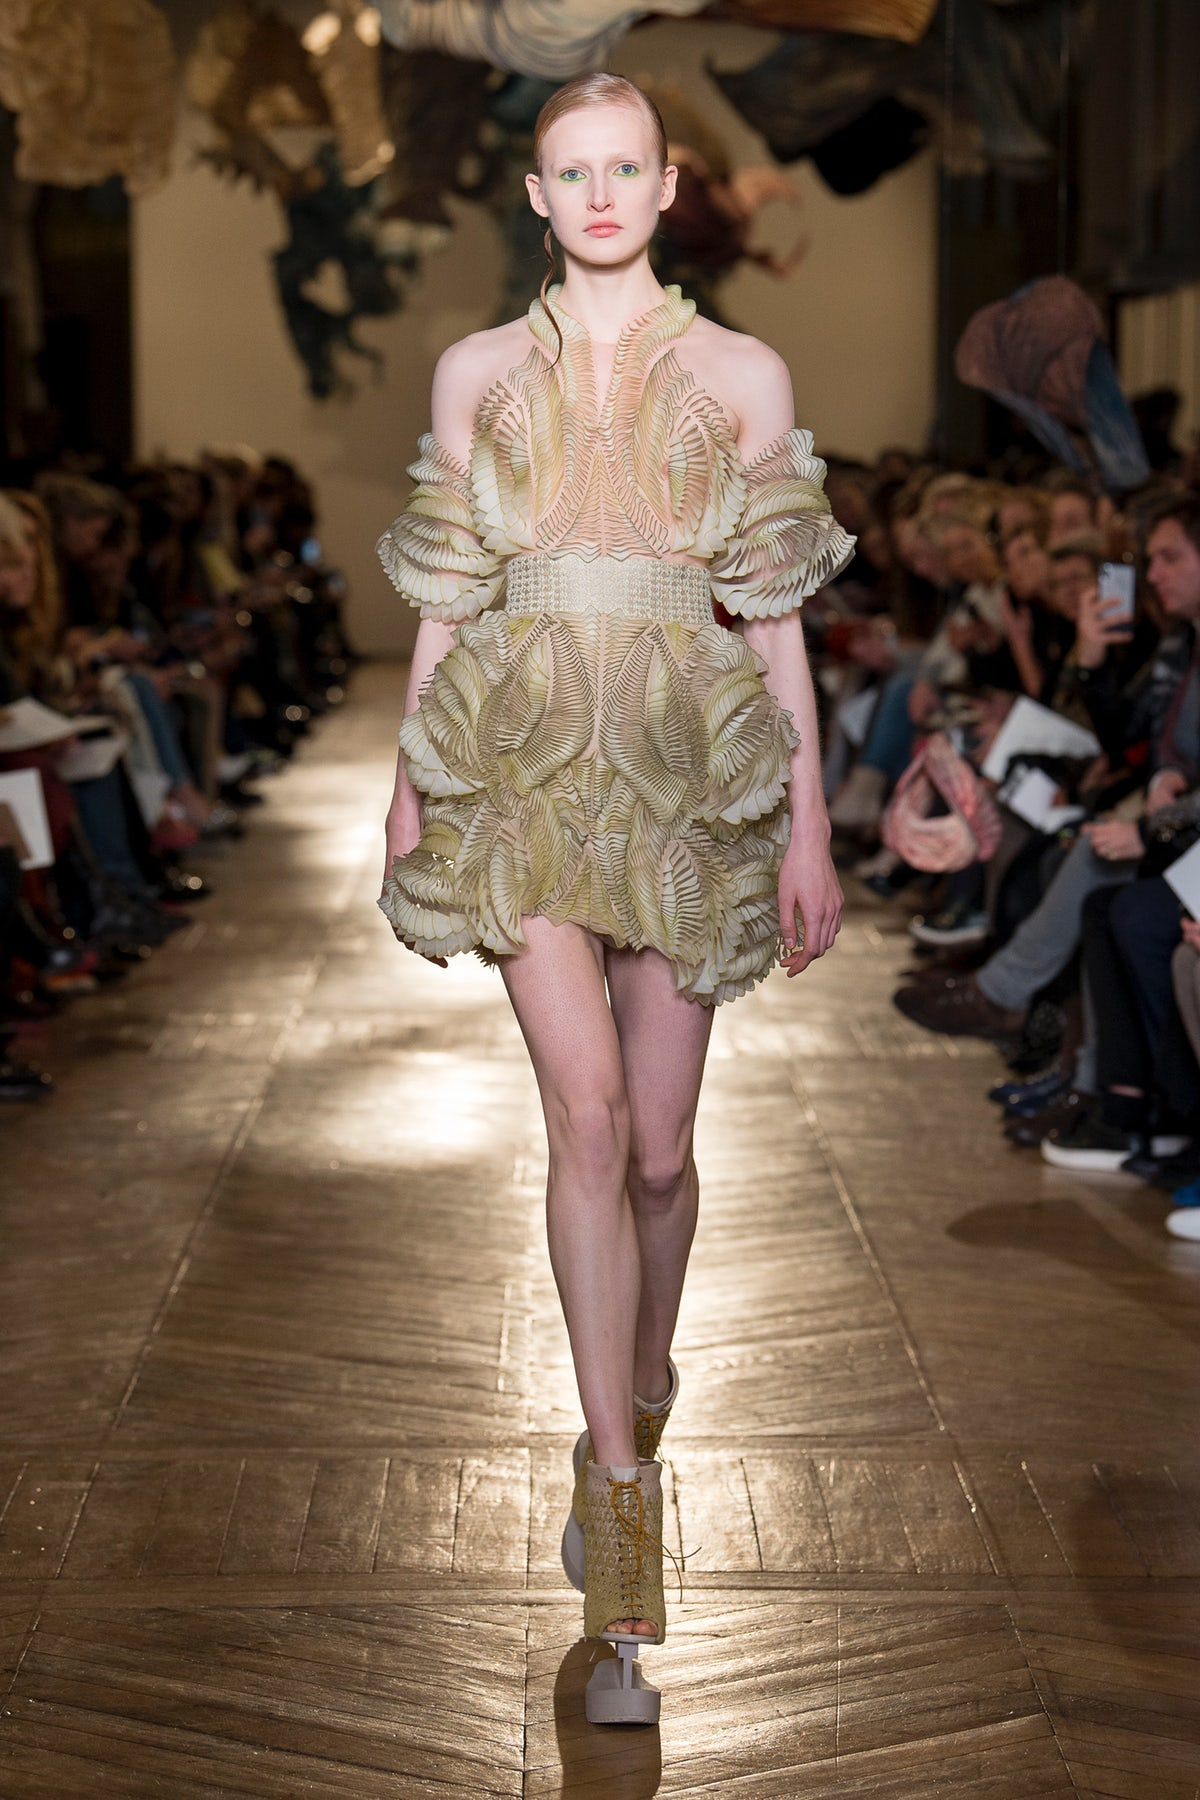 Iris Van Herpen's School of Nature